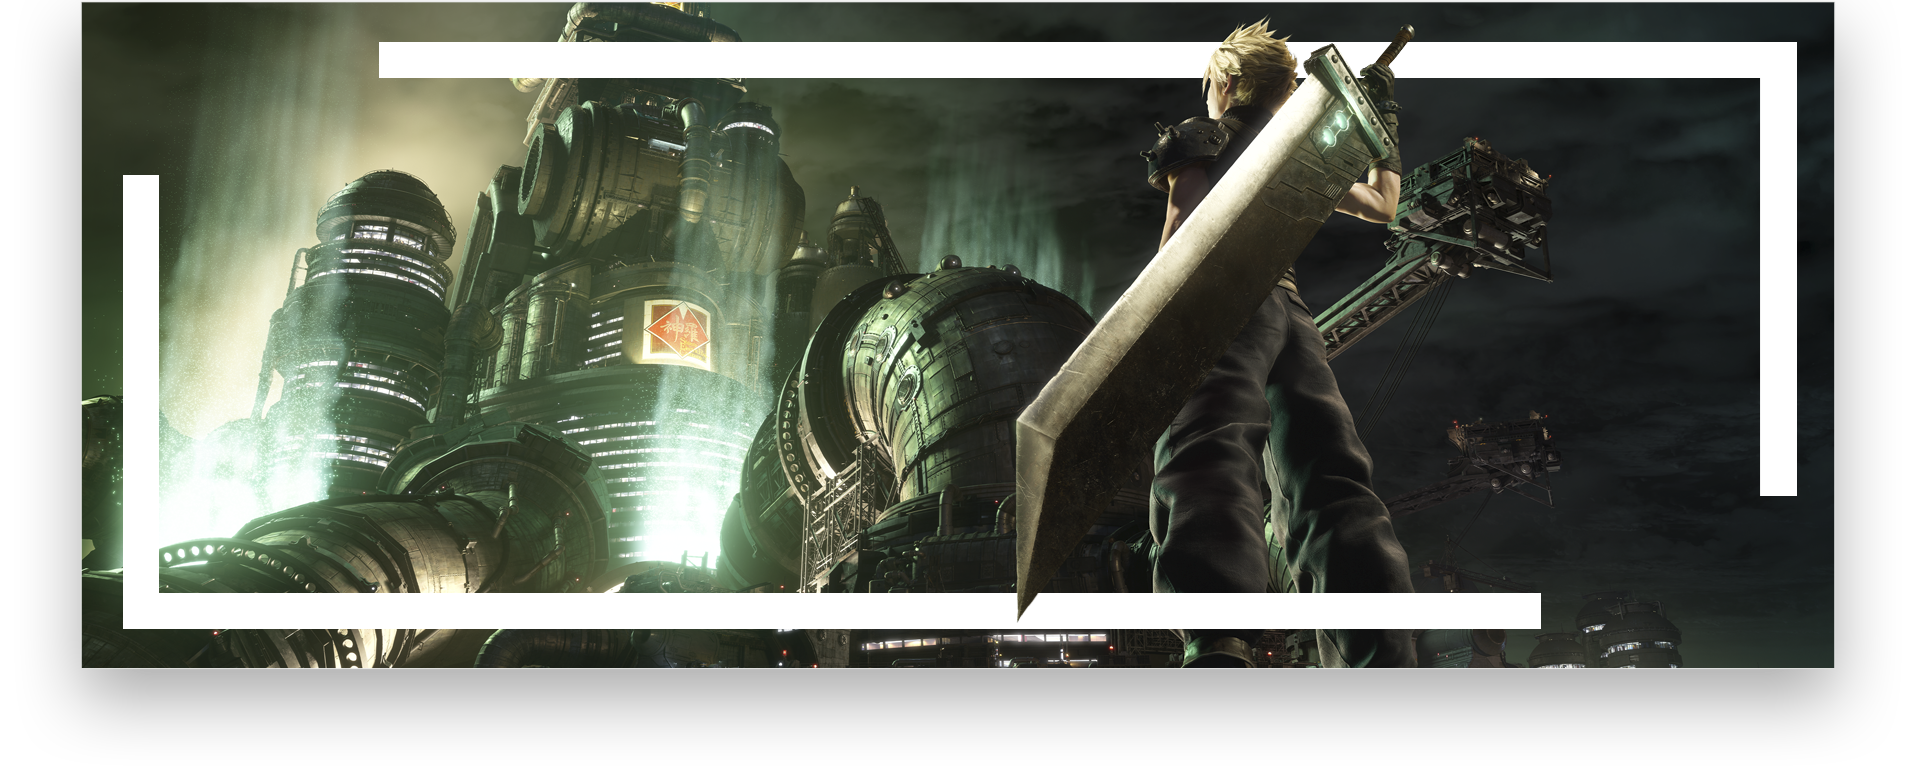 Final Fantasy 7 key art